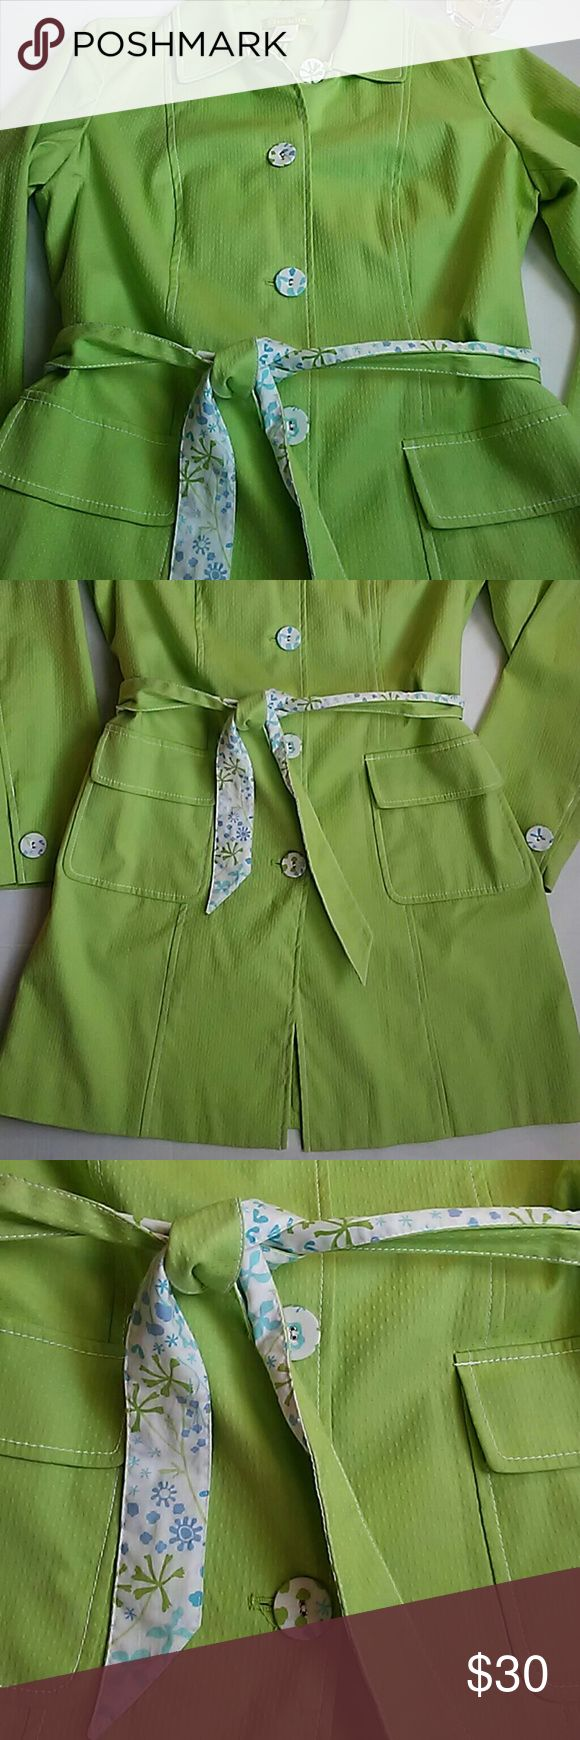 "Sigrid Olsen Jacket/Trench Coat M Lime Green Designer Trench Coat. Size Medium. White floral pattern accents. Excellent. Pre-owned condition. Material: 97% cotton, 3% spandex. Measurements: length 34 2/4"", width 21"", sleeve length 17"". Sigrid Olsen Jackets & Coats Trench Coats"